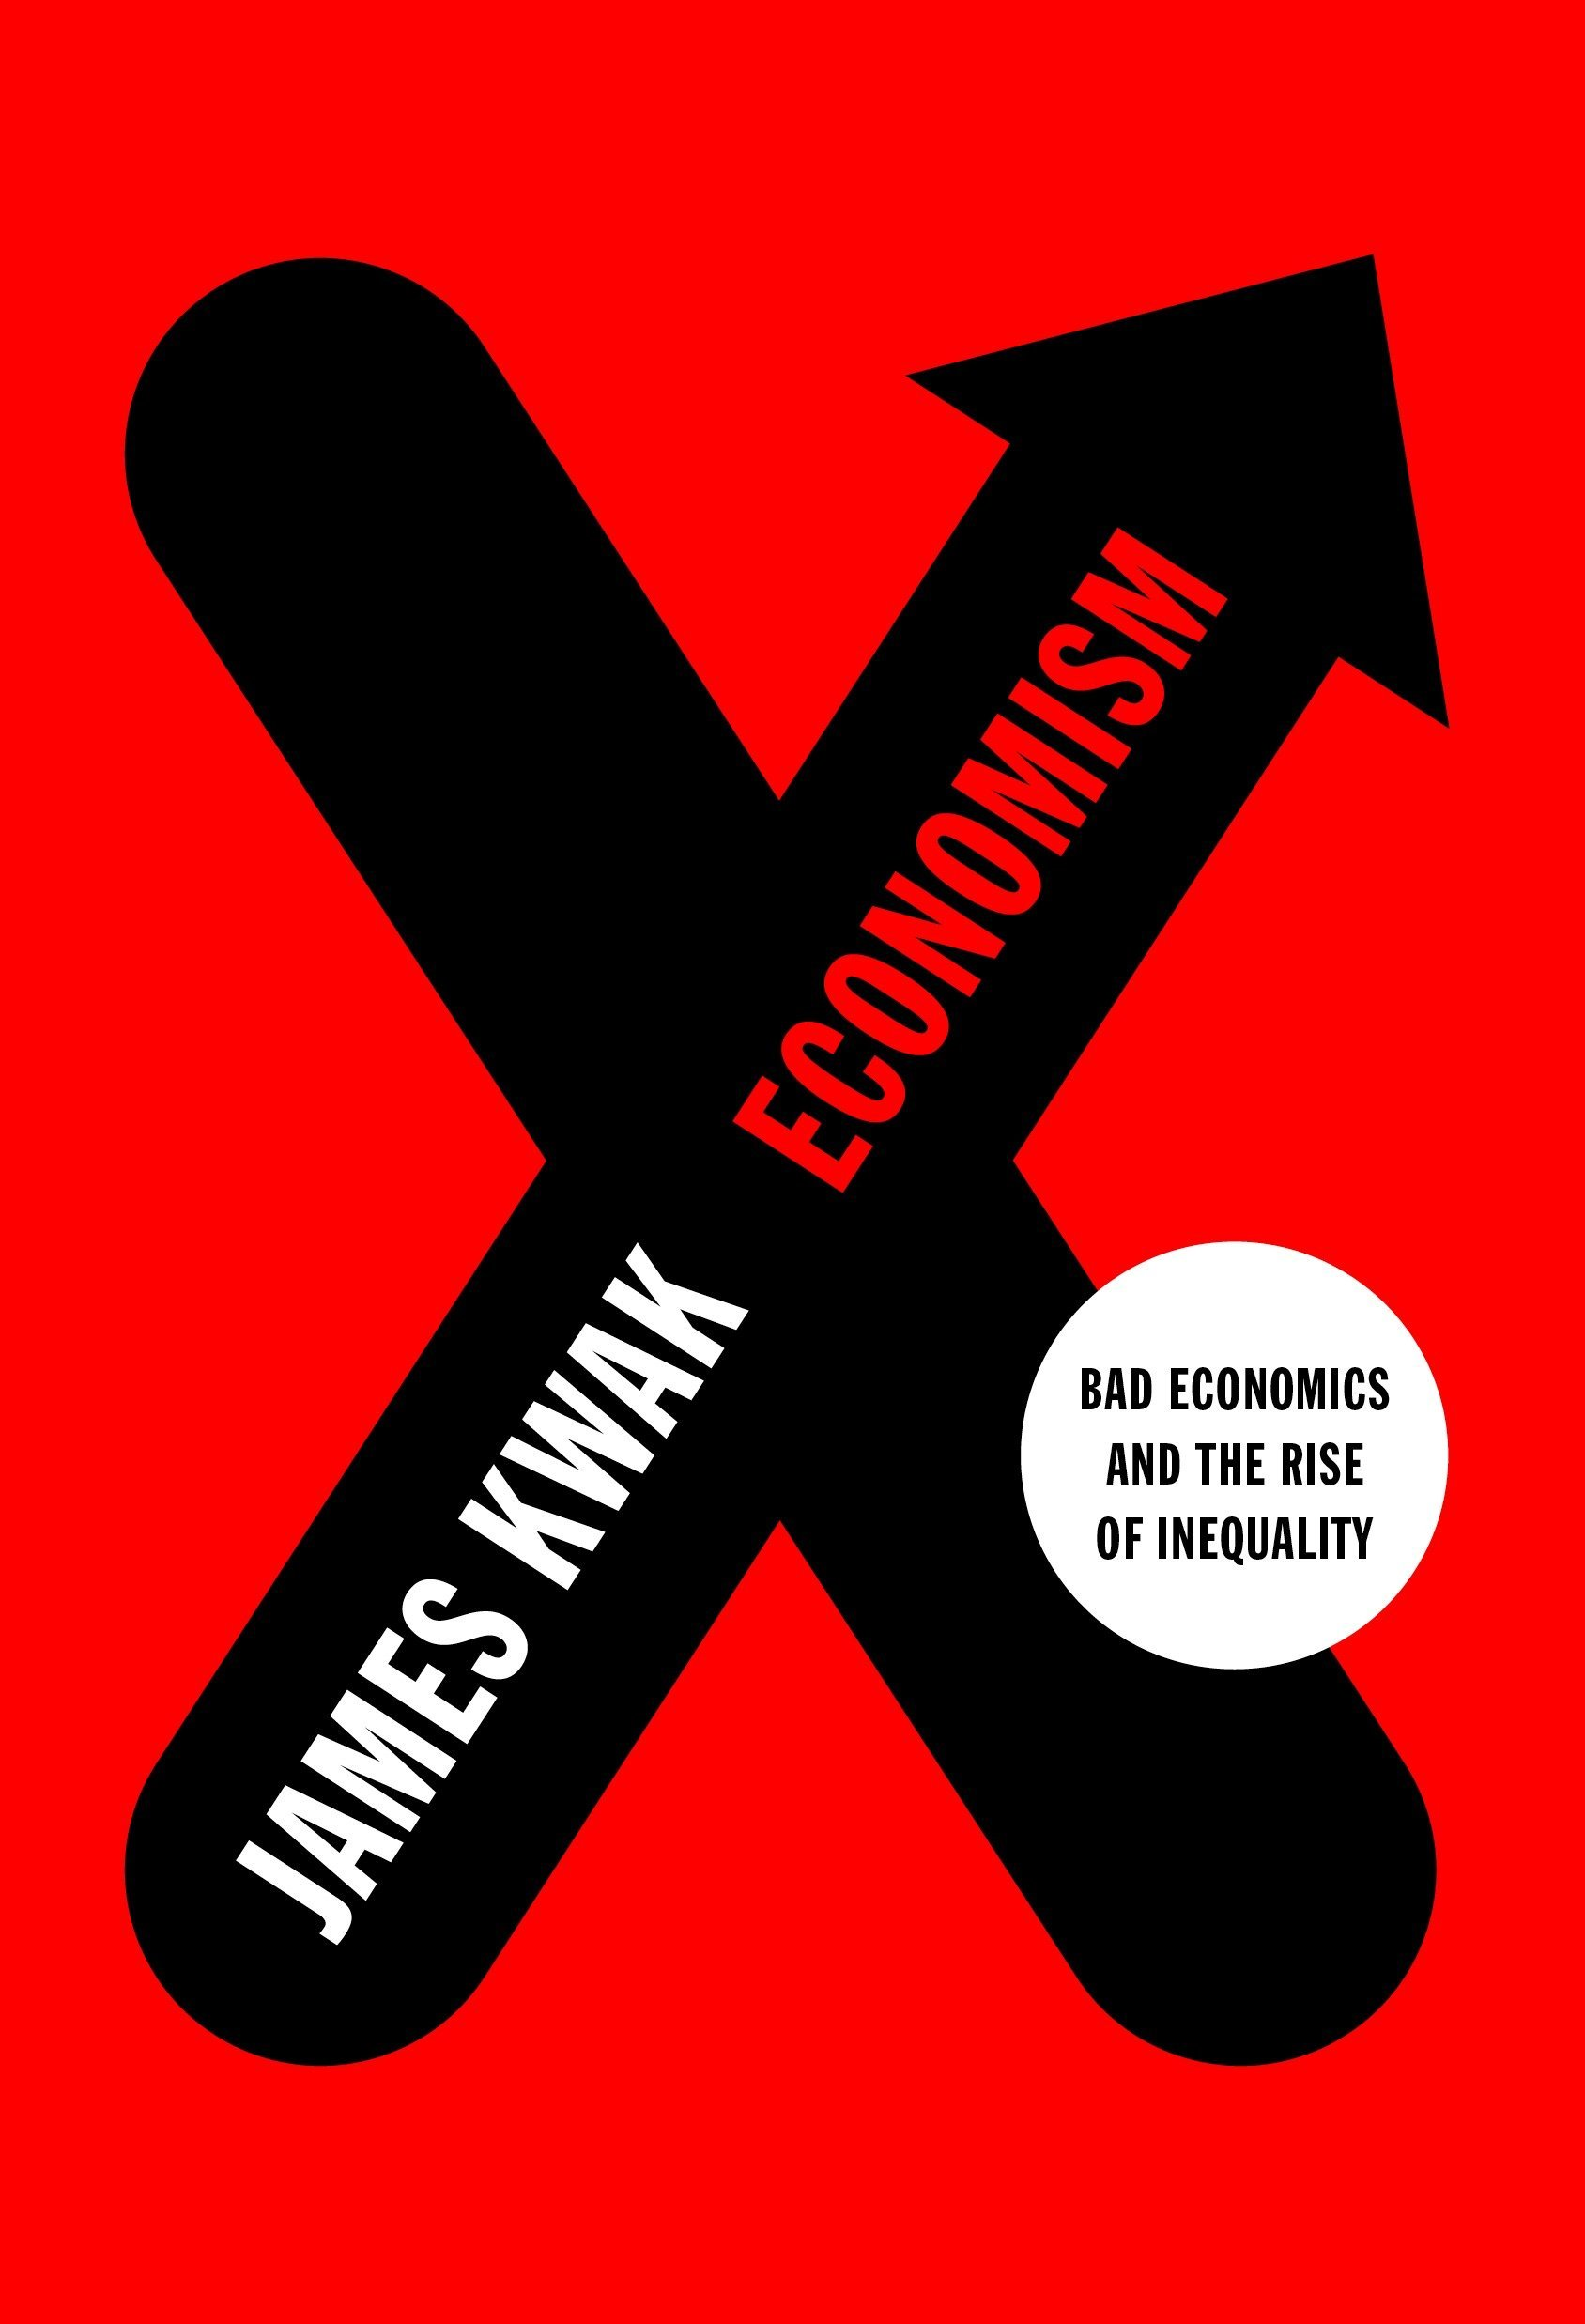 Economism Bad Economics And The Rise Of Inequality James Kwak